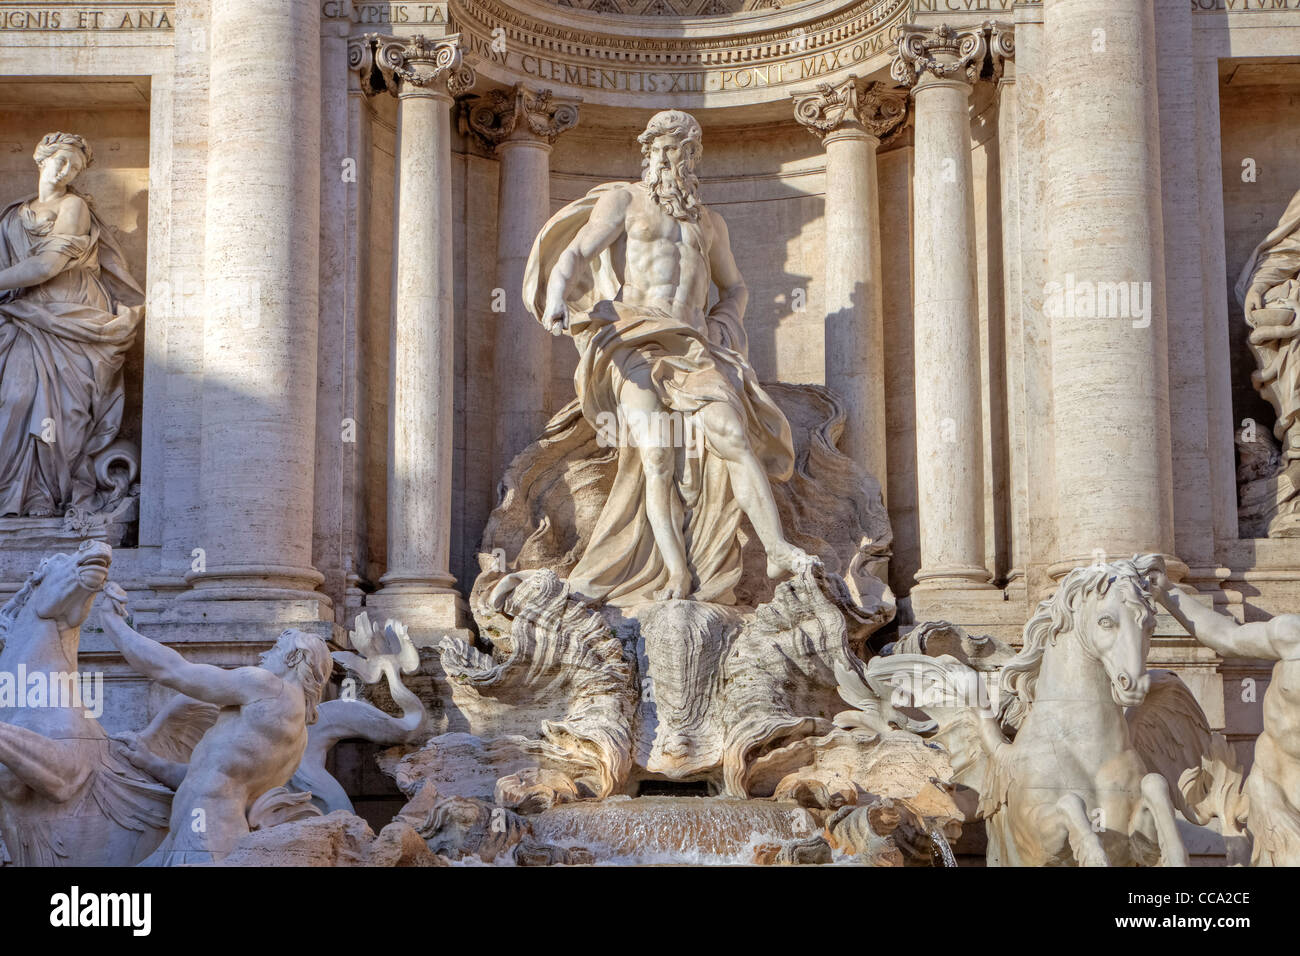 Trevi fountain in Rome - Stock Image